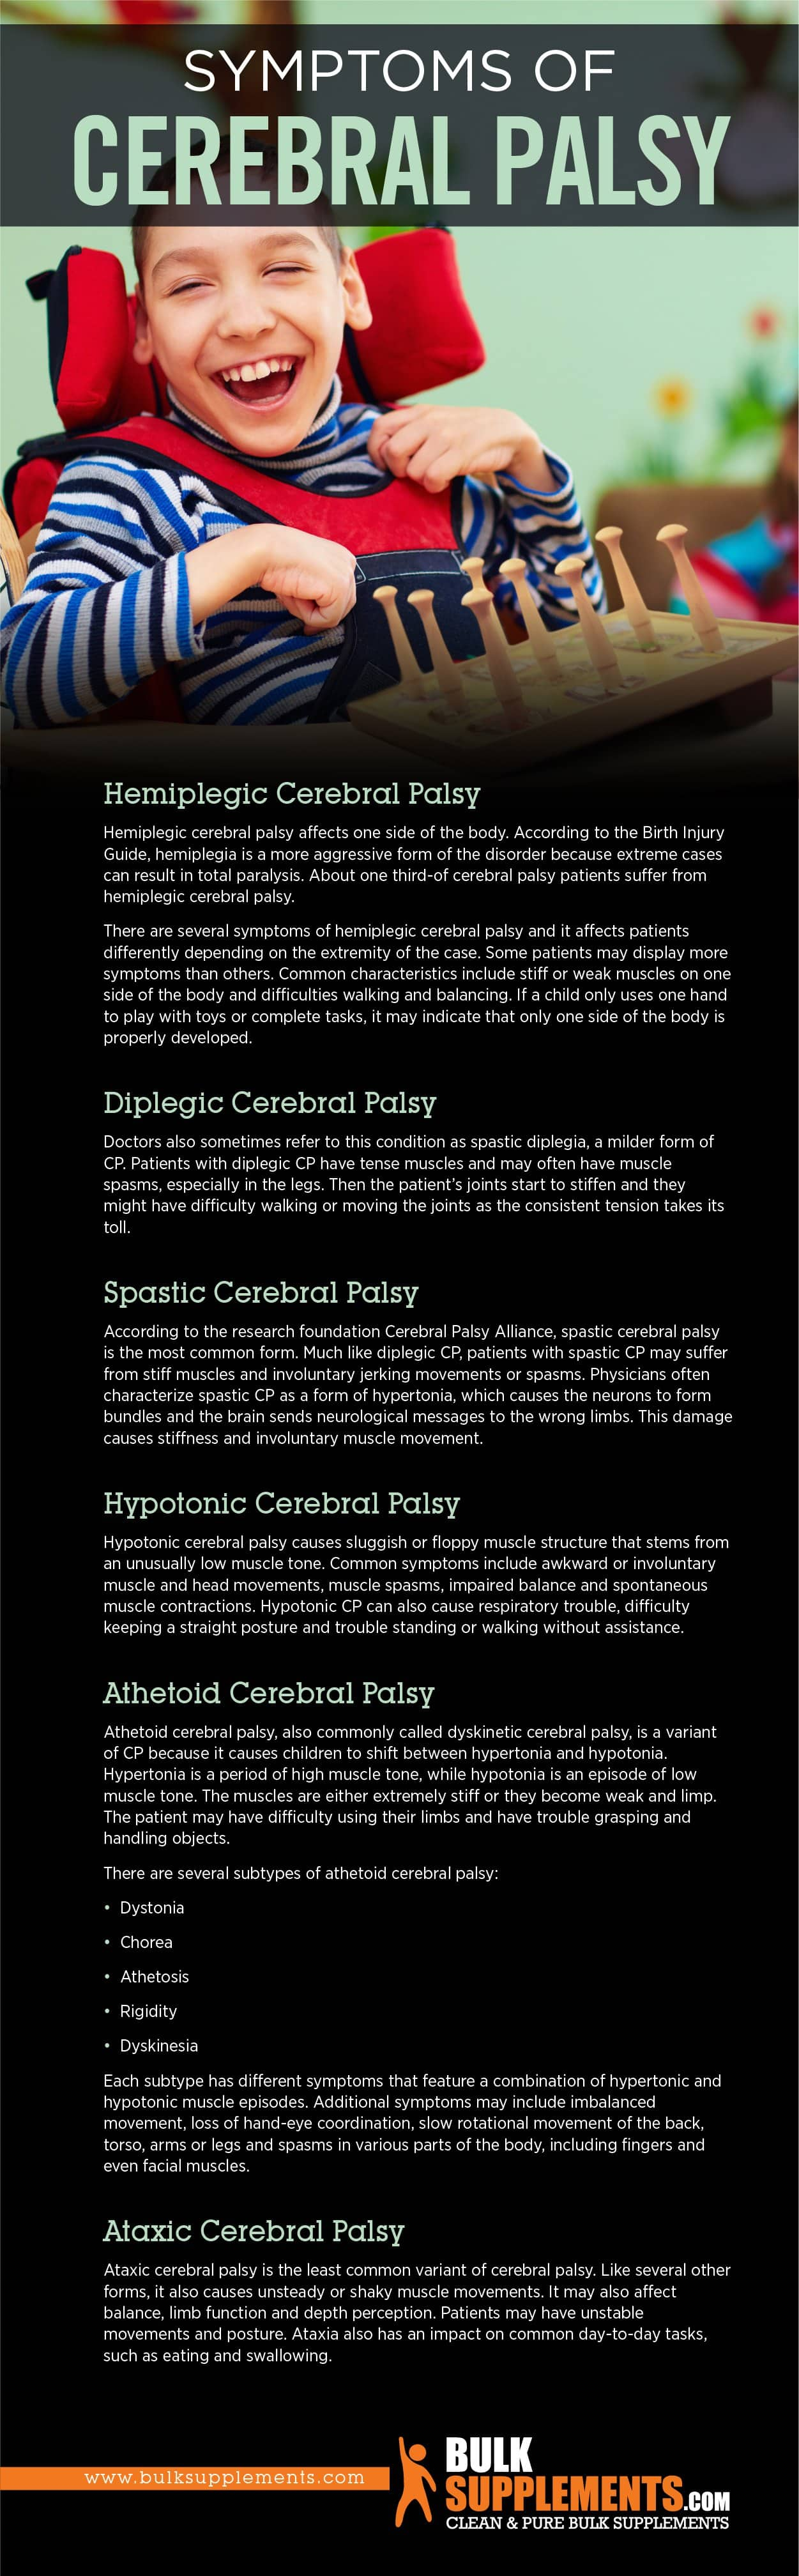 Symptoms of Cerebral Palsy